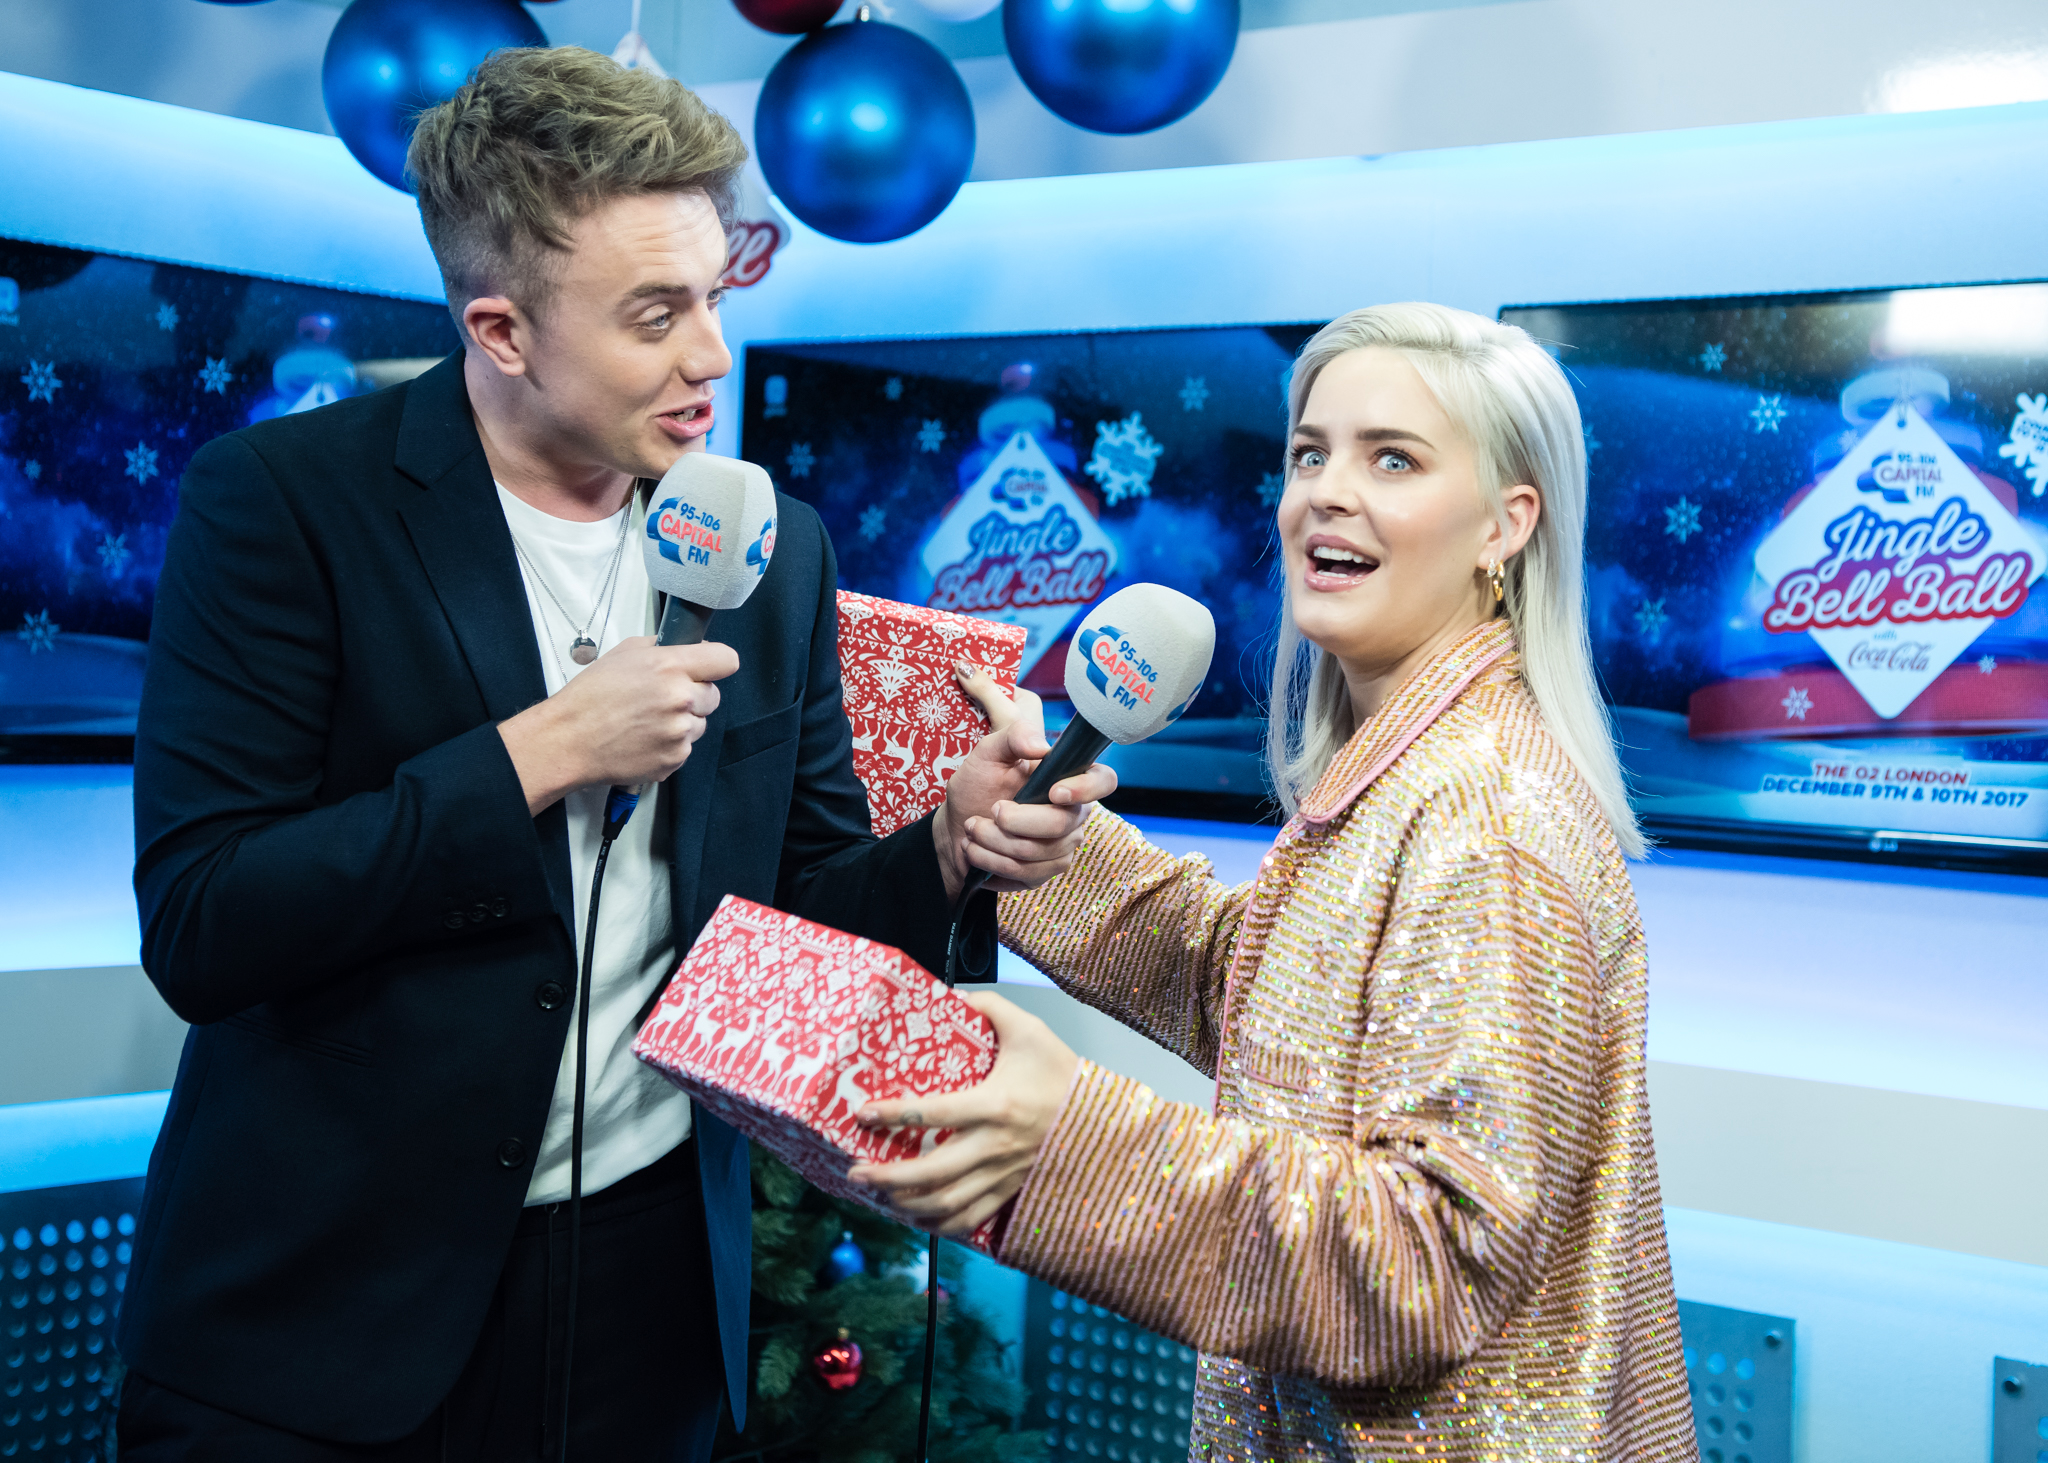 Anne-Marie with Roman Kemp